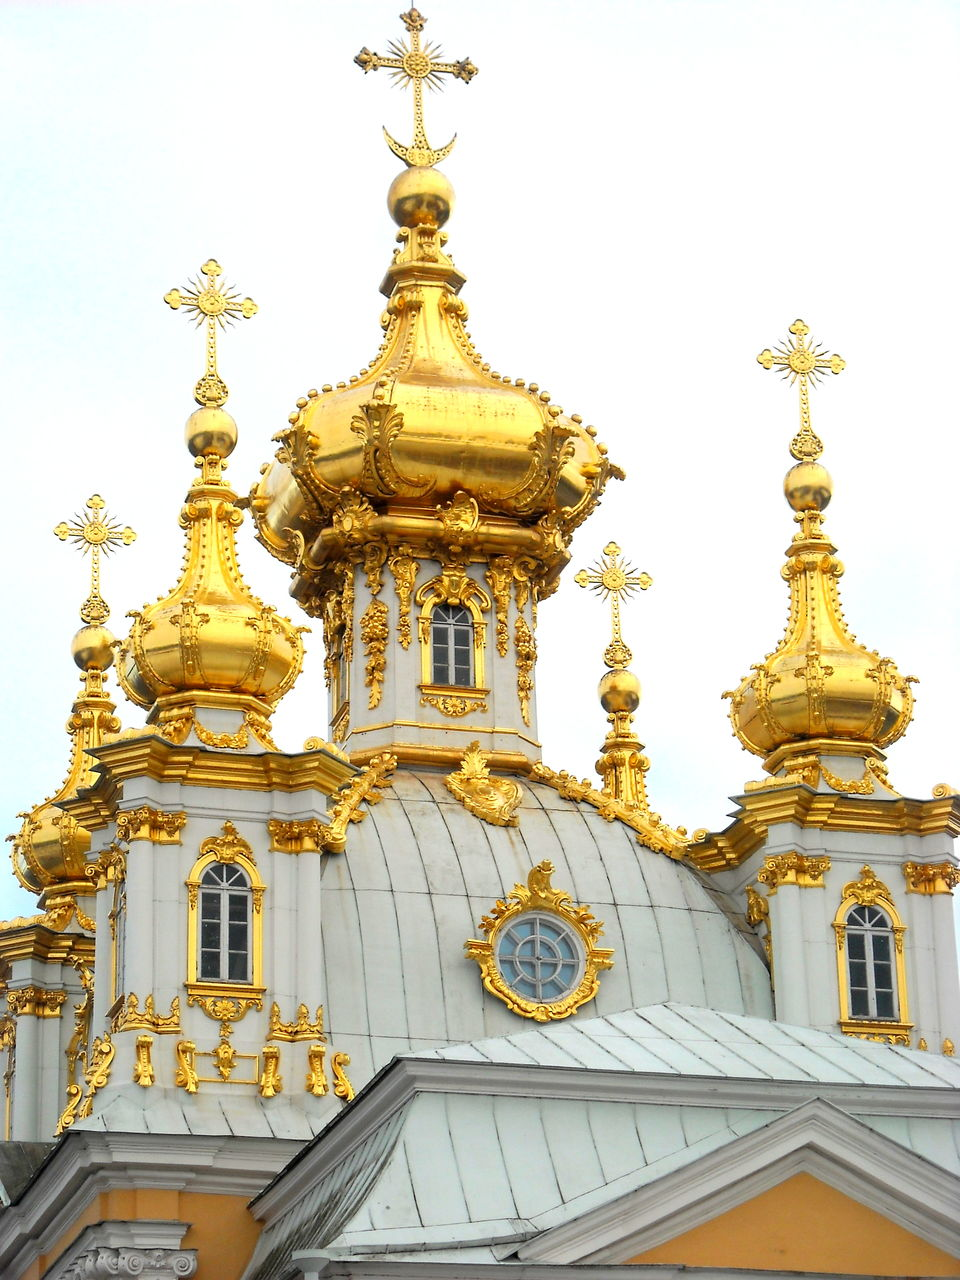 architecture, religion, gold colored, building exterior, spirituality, place of worship, built structure, ornate, gold, no people, low angle view, outdoors, history, travel destinations, dome, sky, day